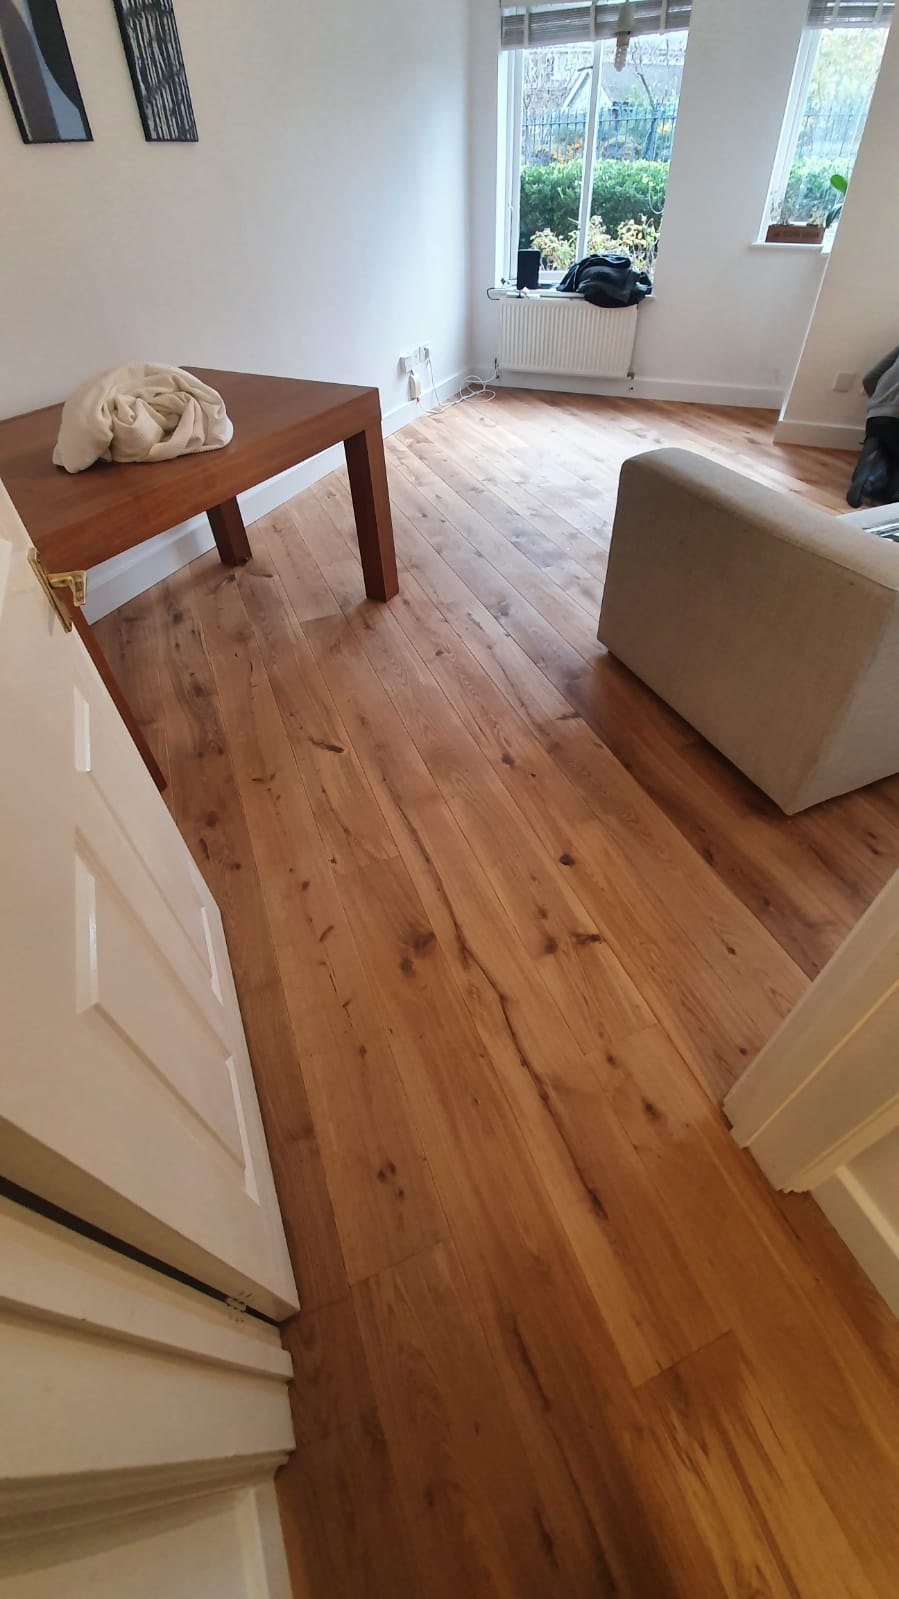 Staki Natural Oil Wood Flooring in Paddington 2